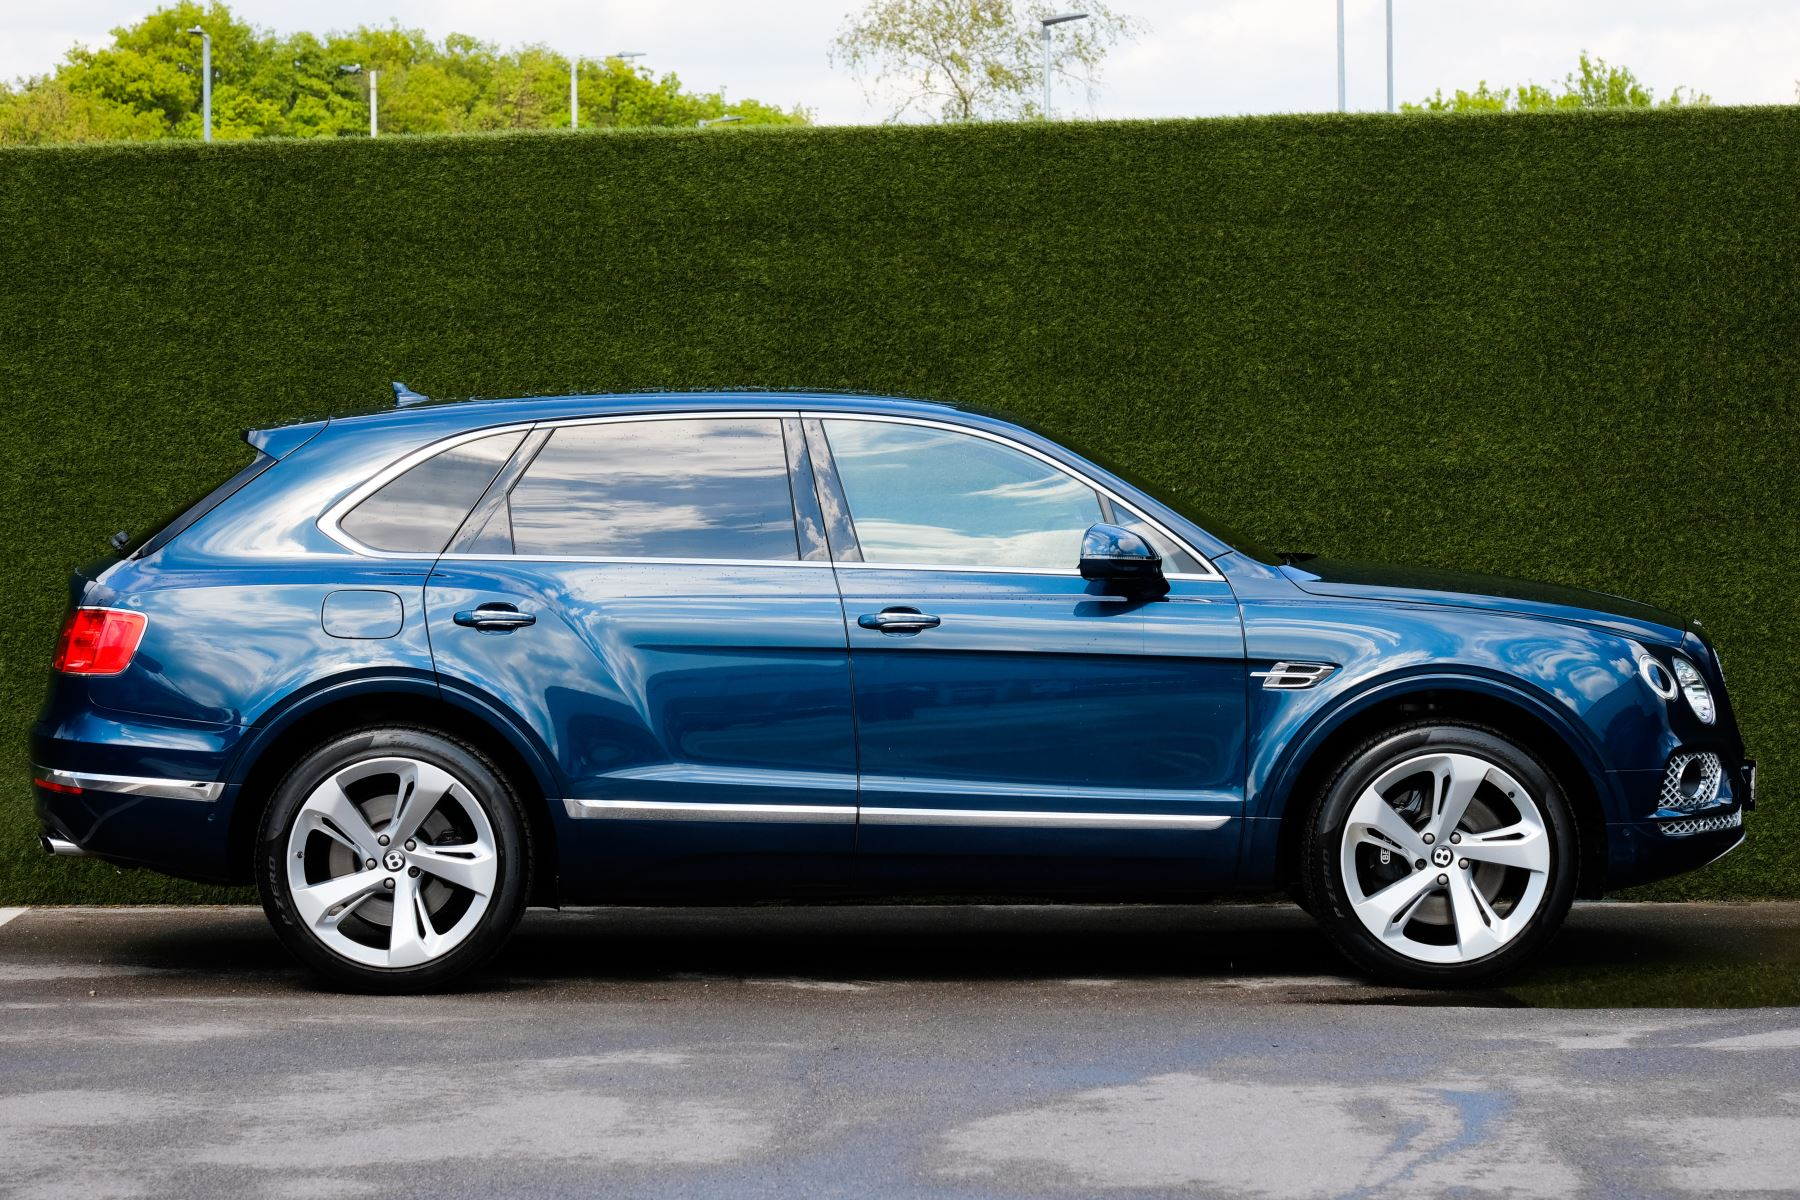 Bentley Bentayga 6.0 W12 - All Terrain, Sunshine, City and Touring Specification image 3